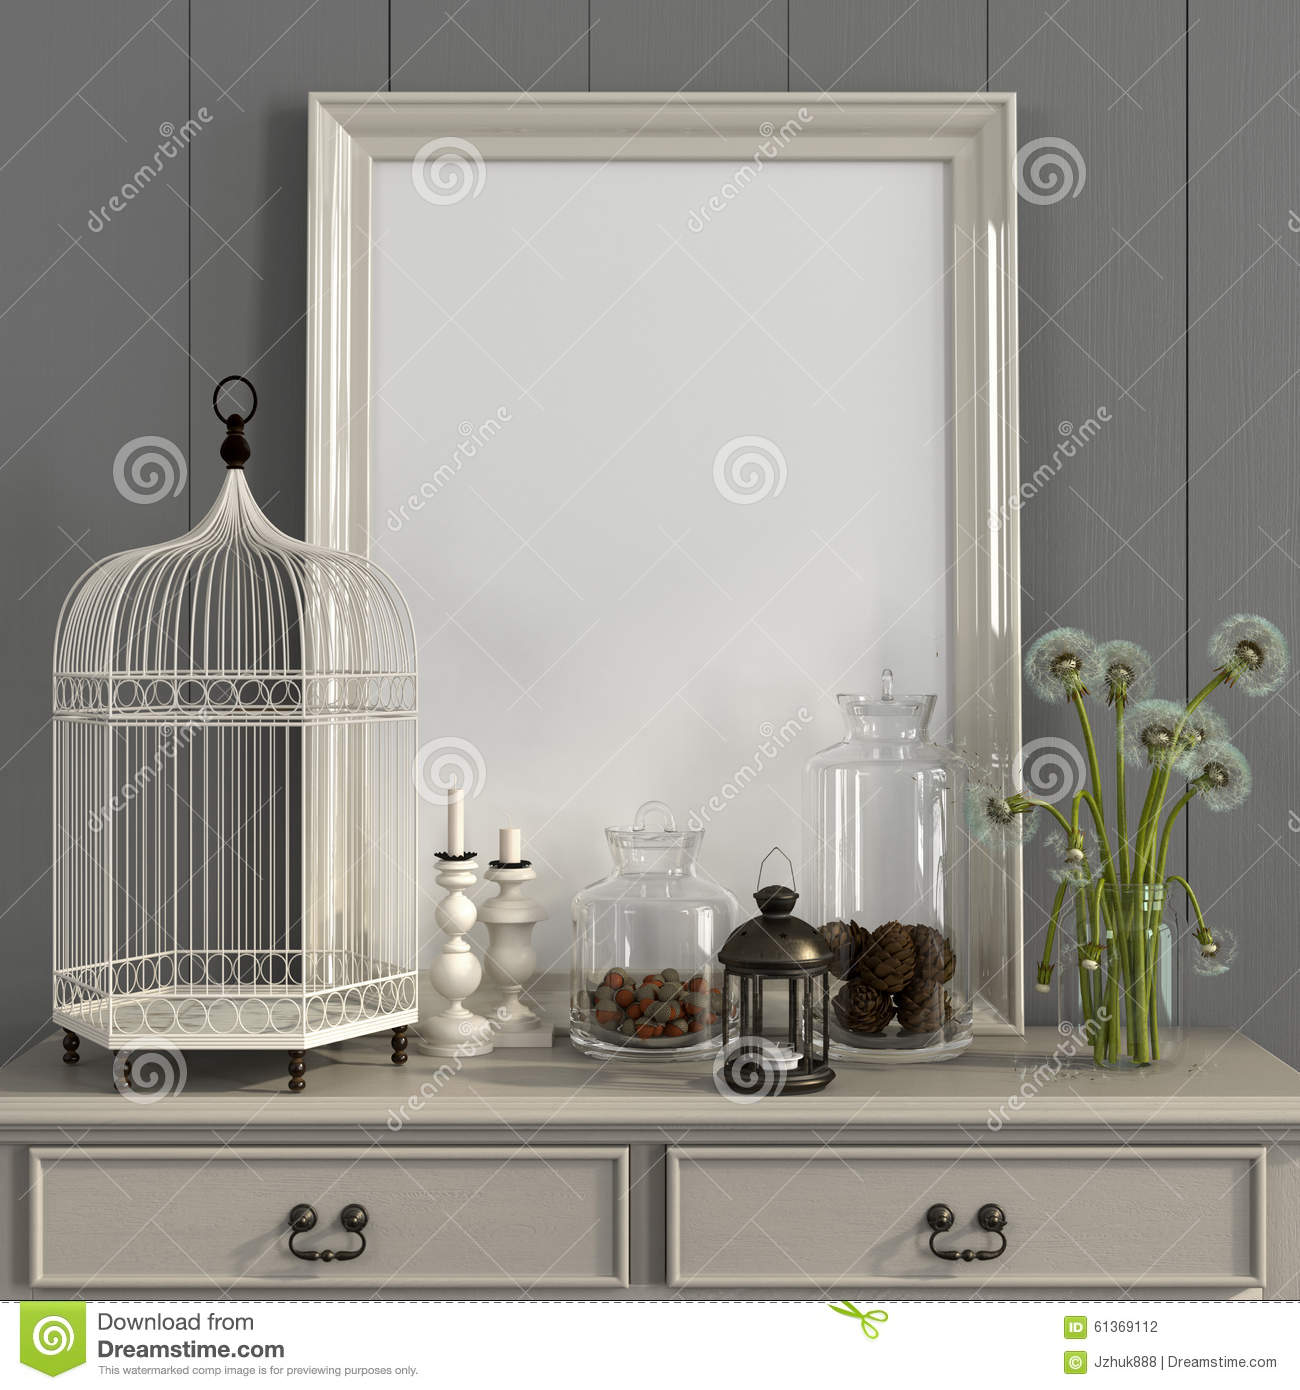 Download Beige Table With Poster Frame And Autumn Decorations Stock Photo - Image of interior, background: 61369112